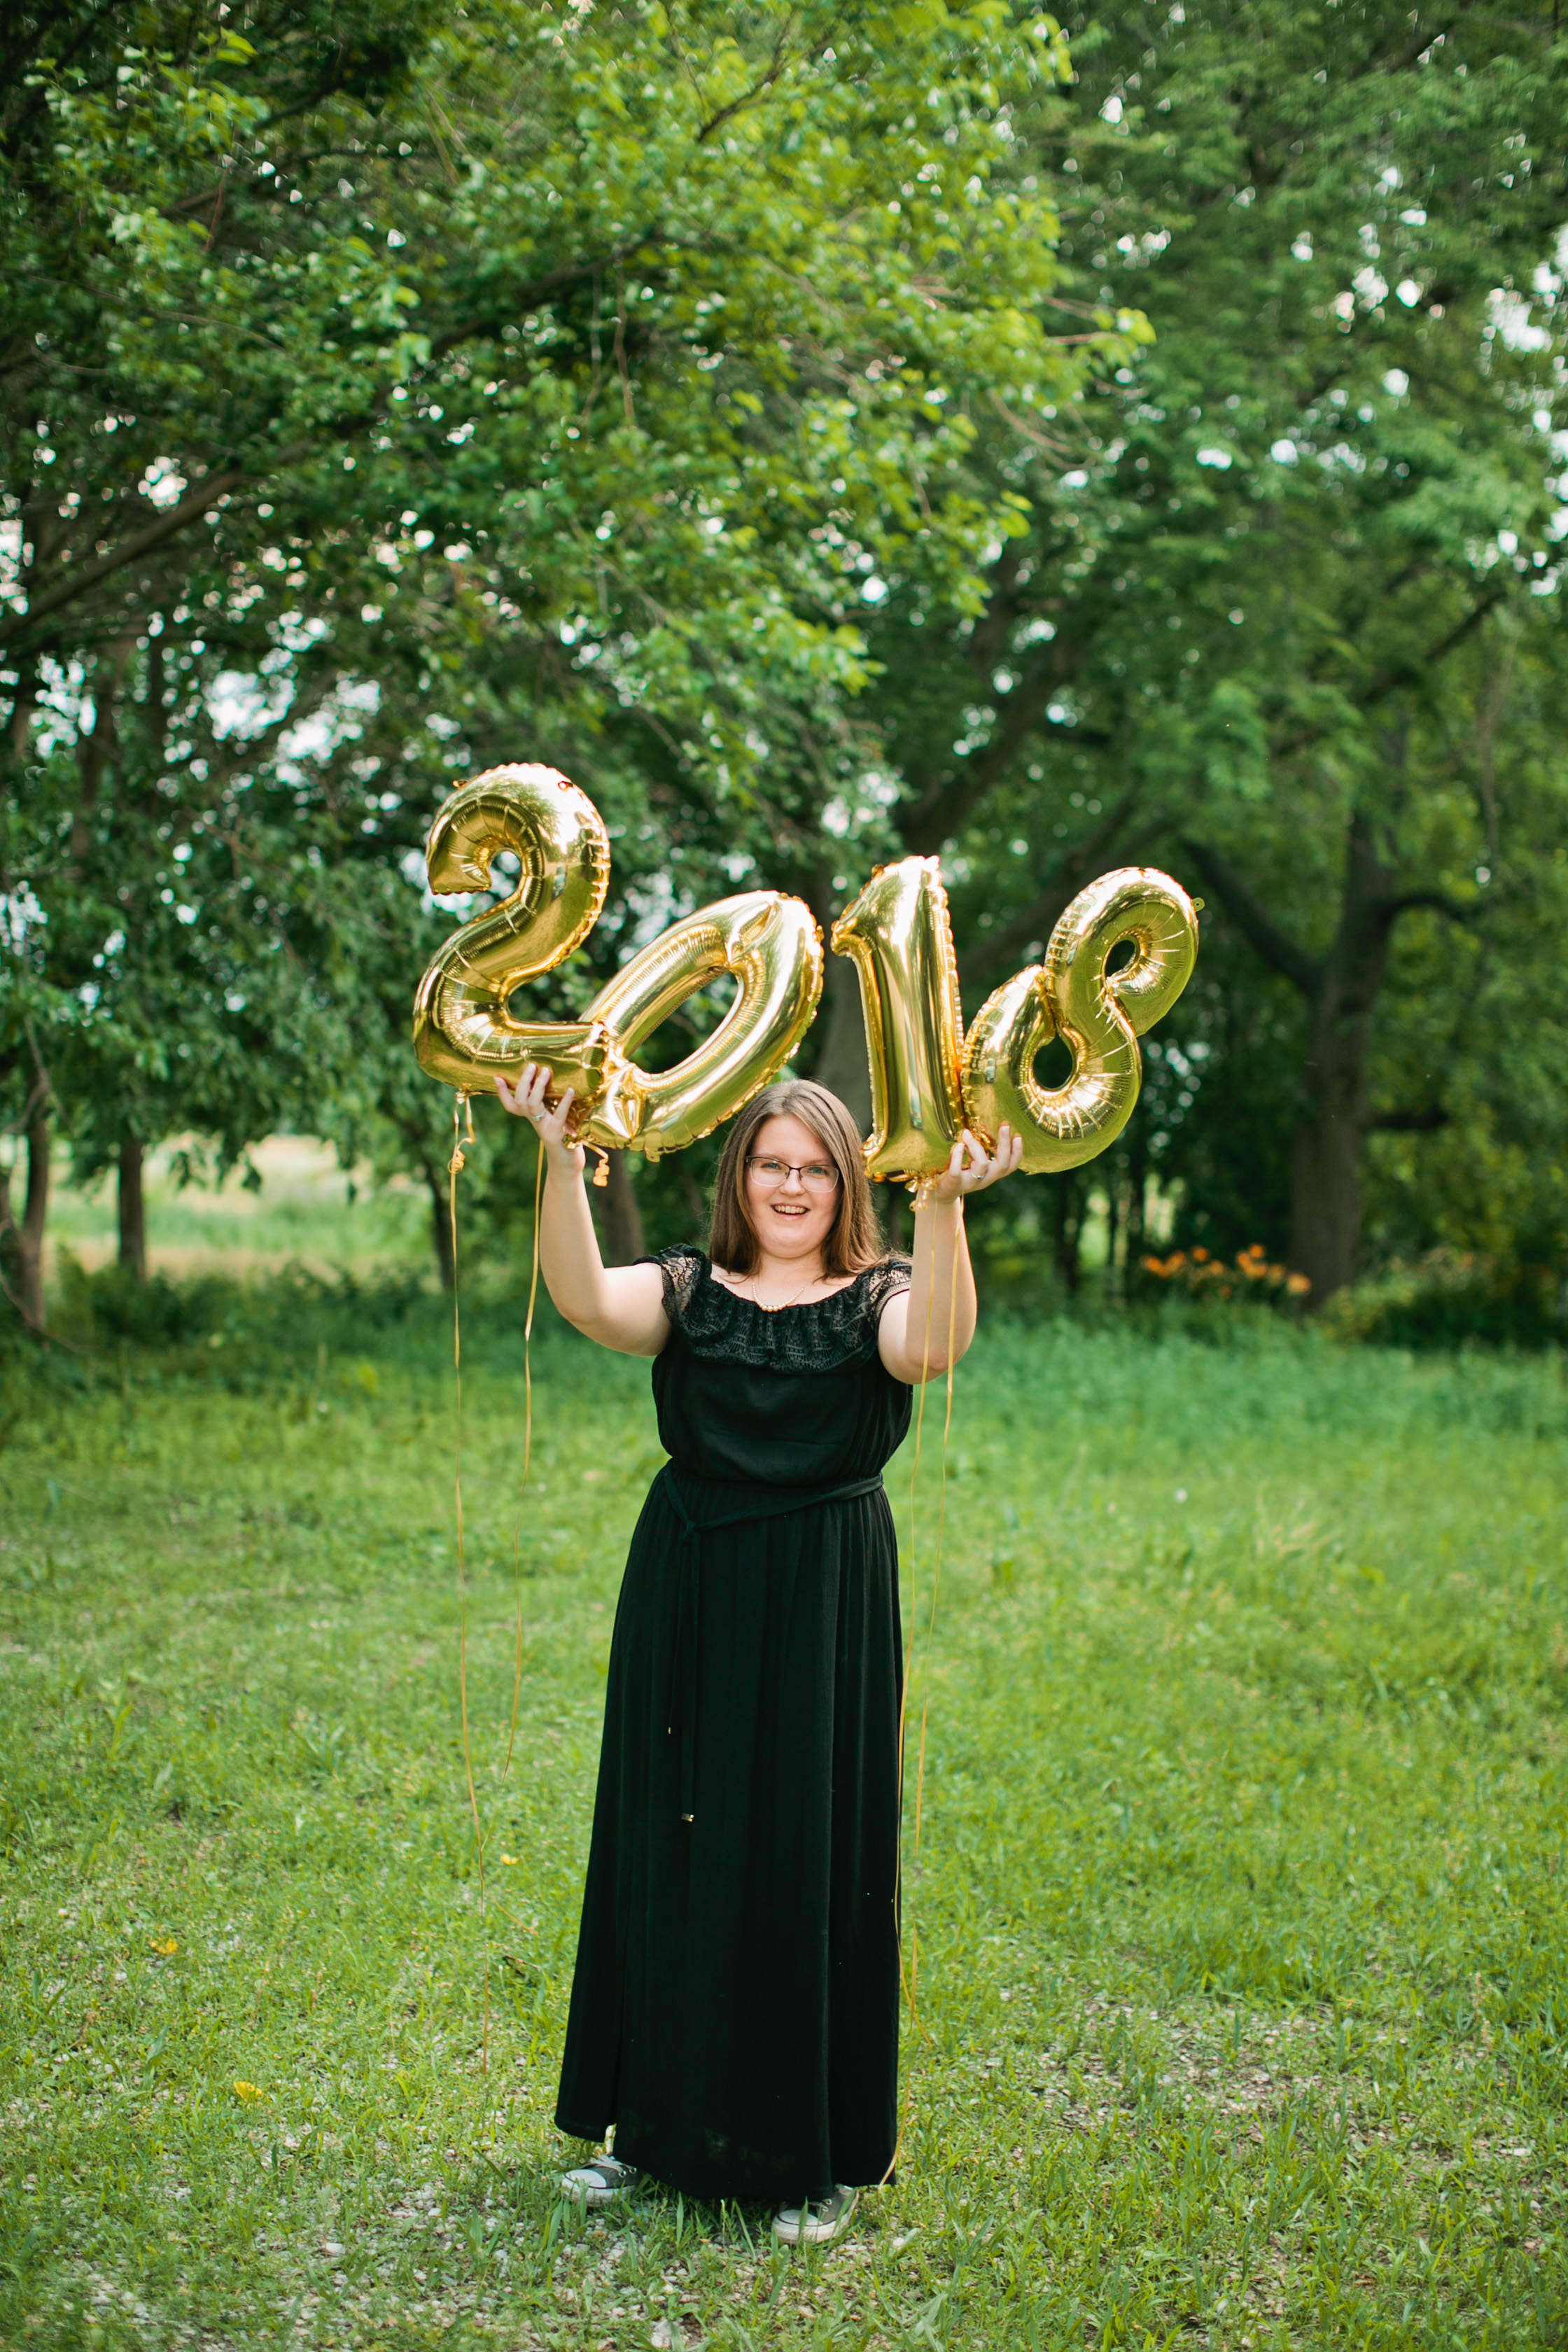 2018 high school senior photos with number balloons